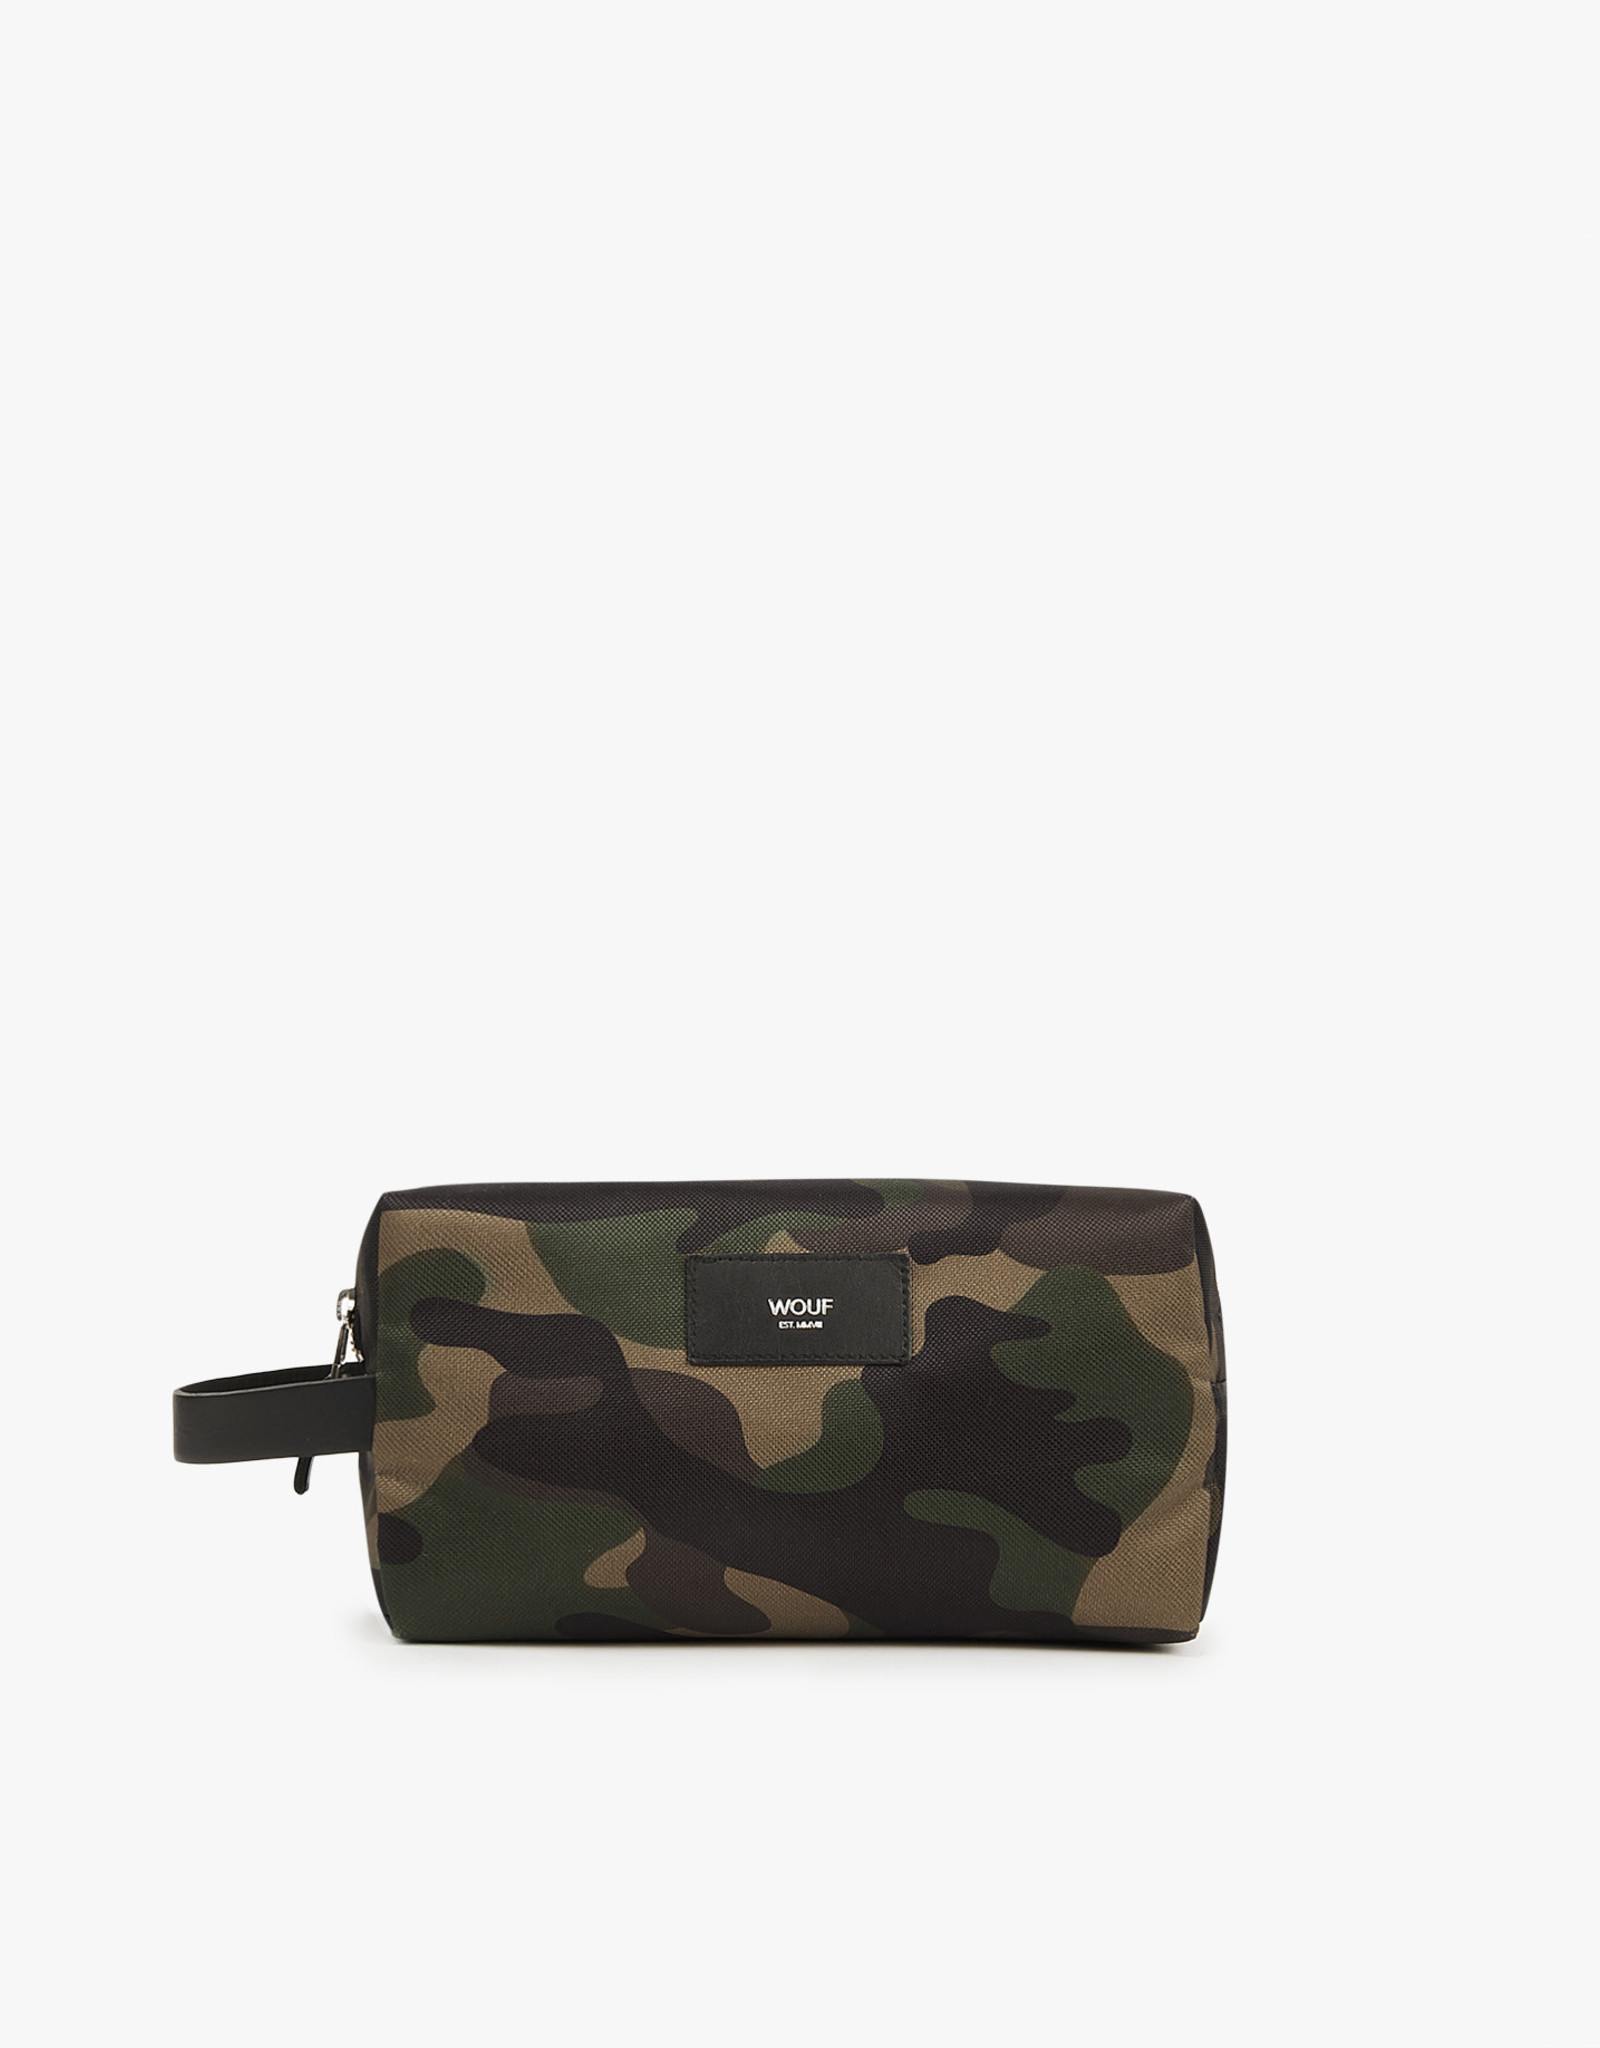 WOUF WOUF Camouflage Travel Case